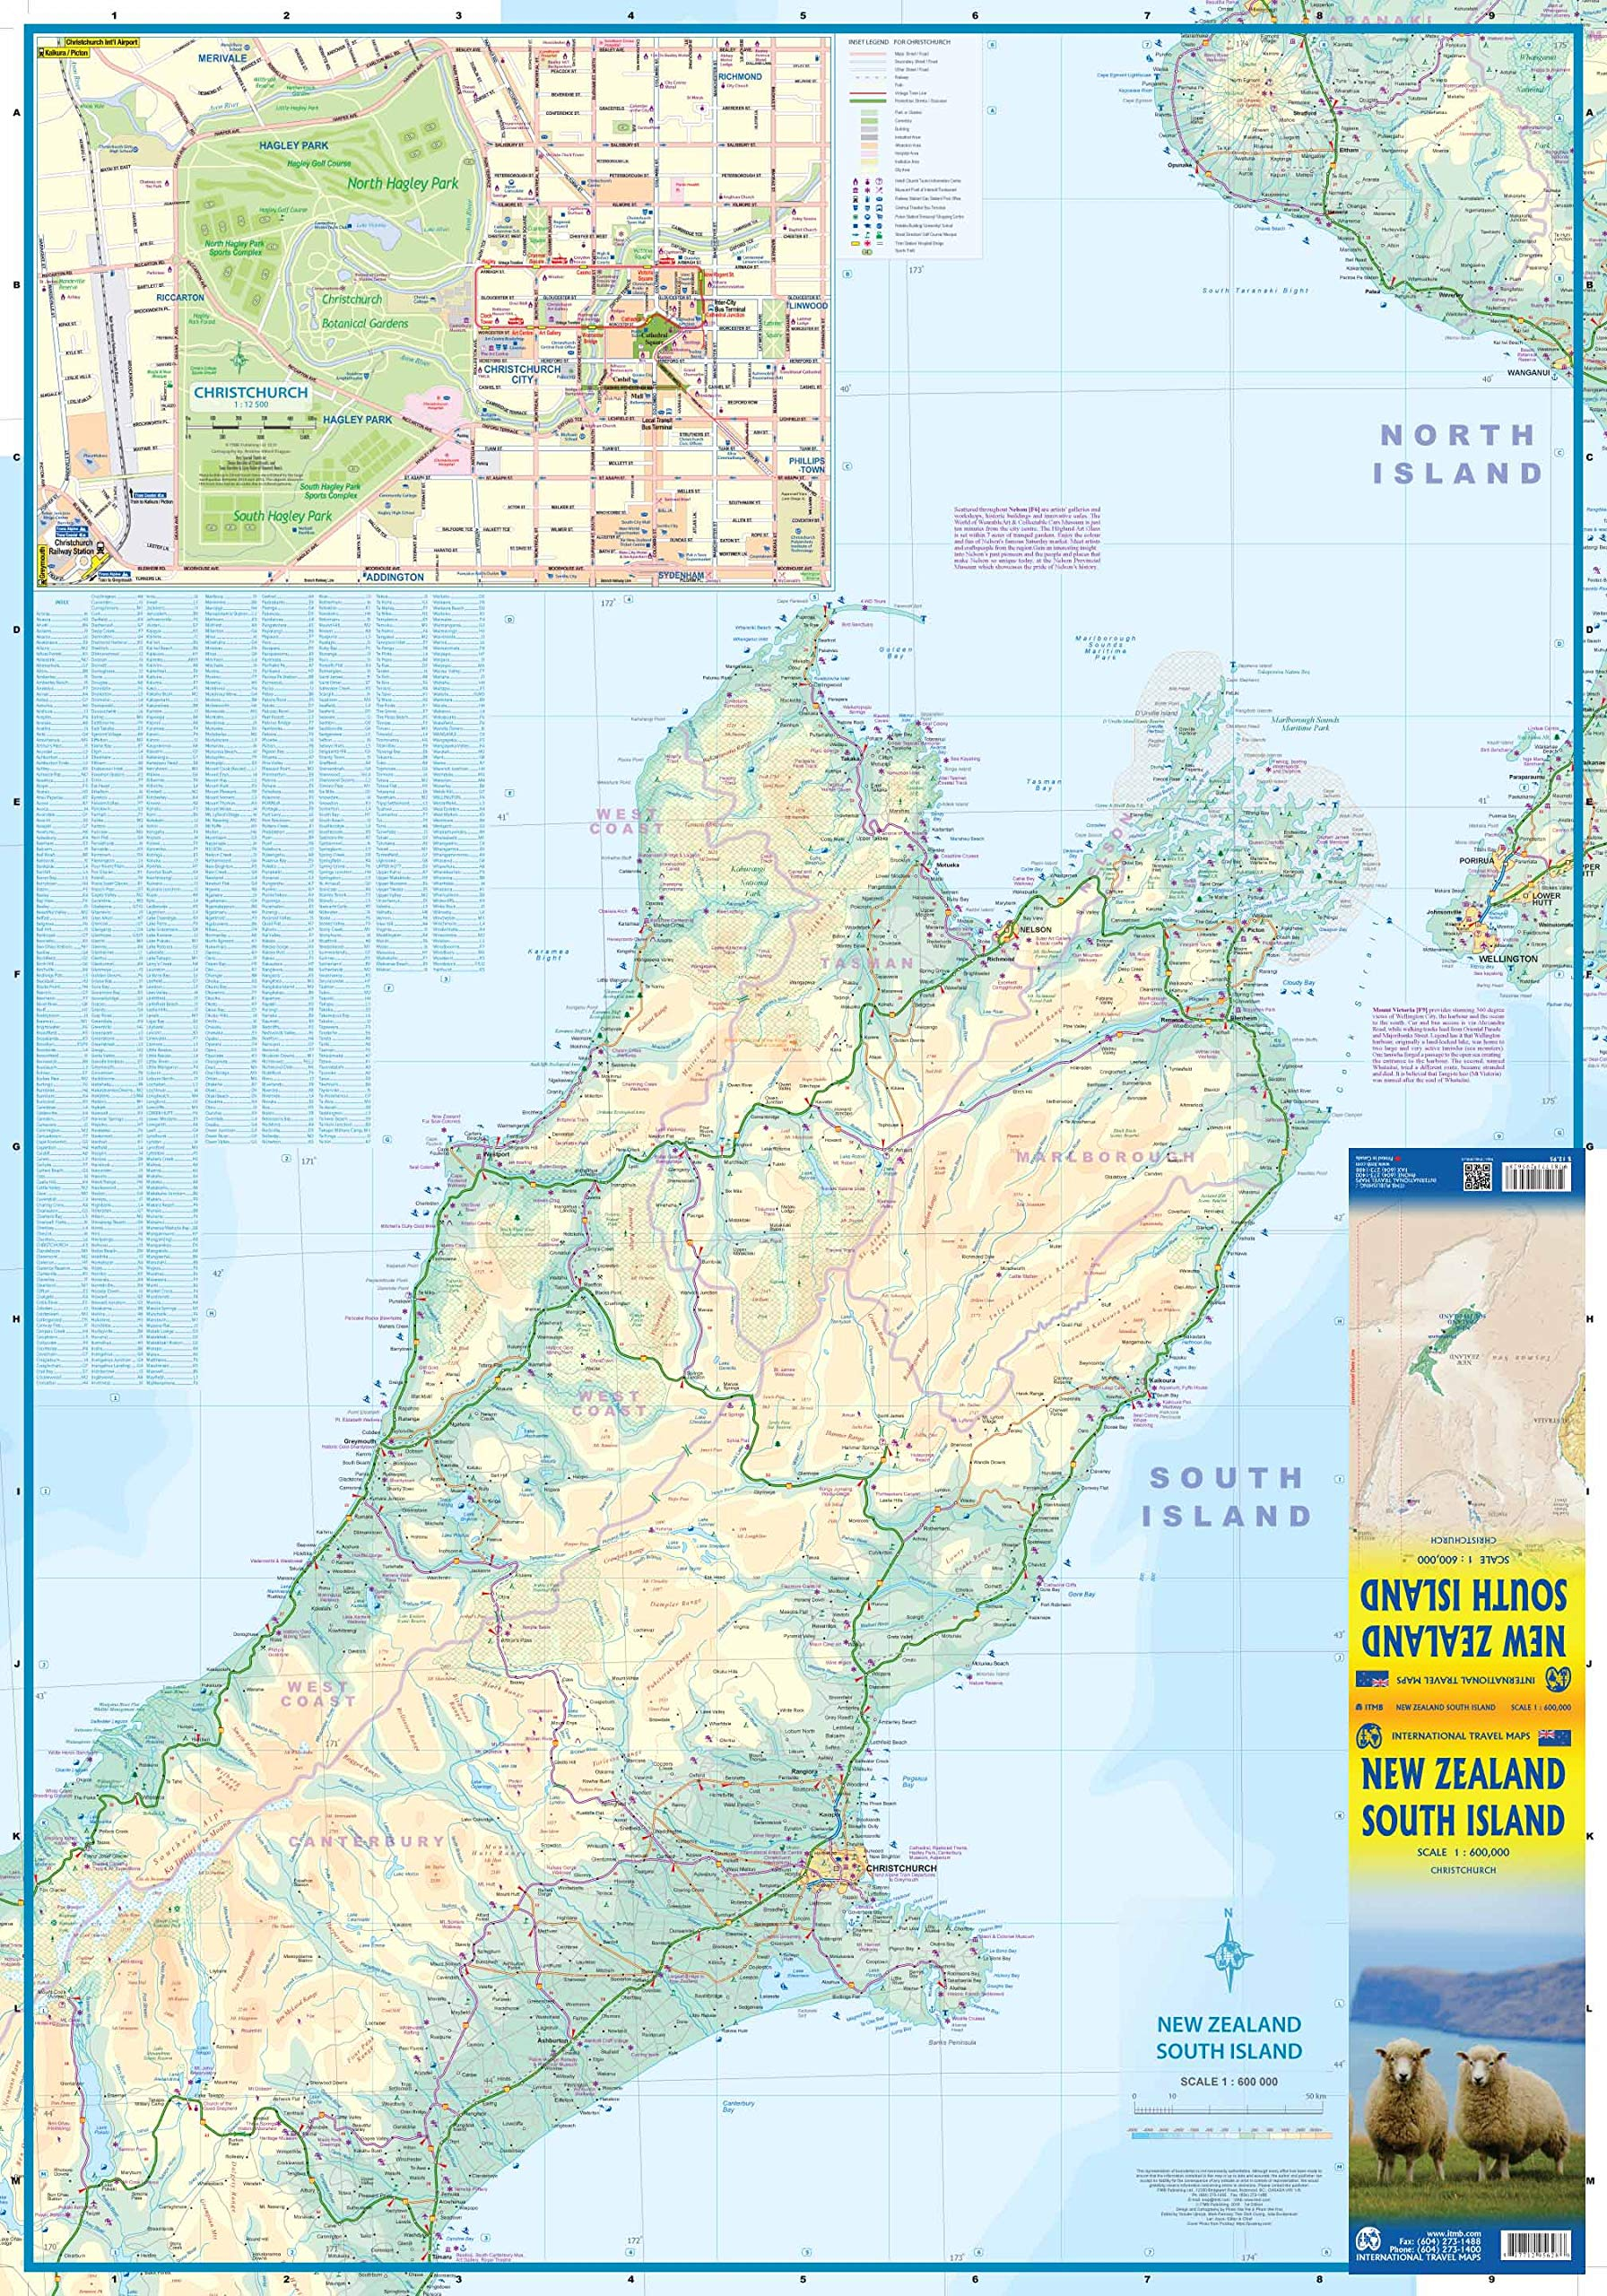 New Zealand South Island ITM Travel Map 1e